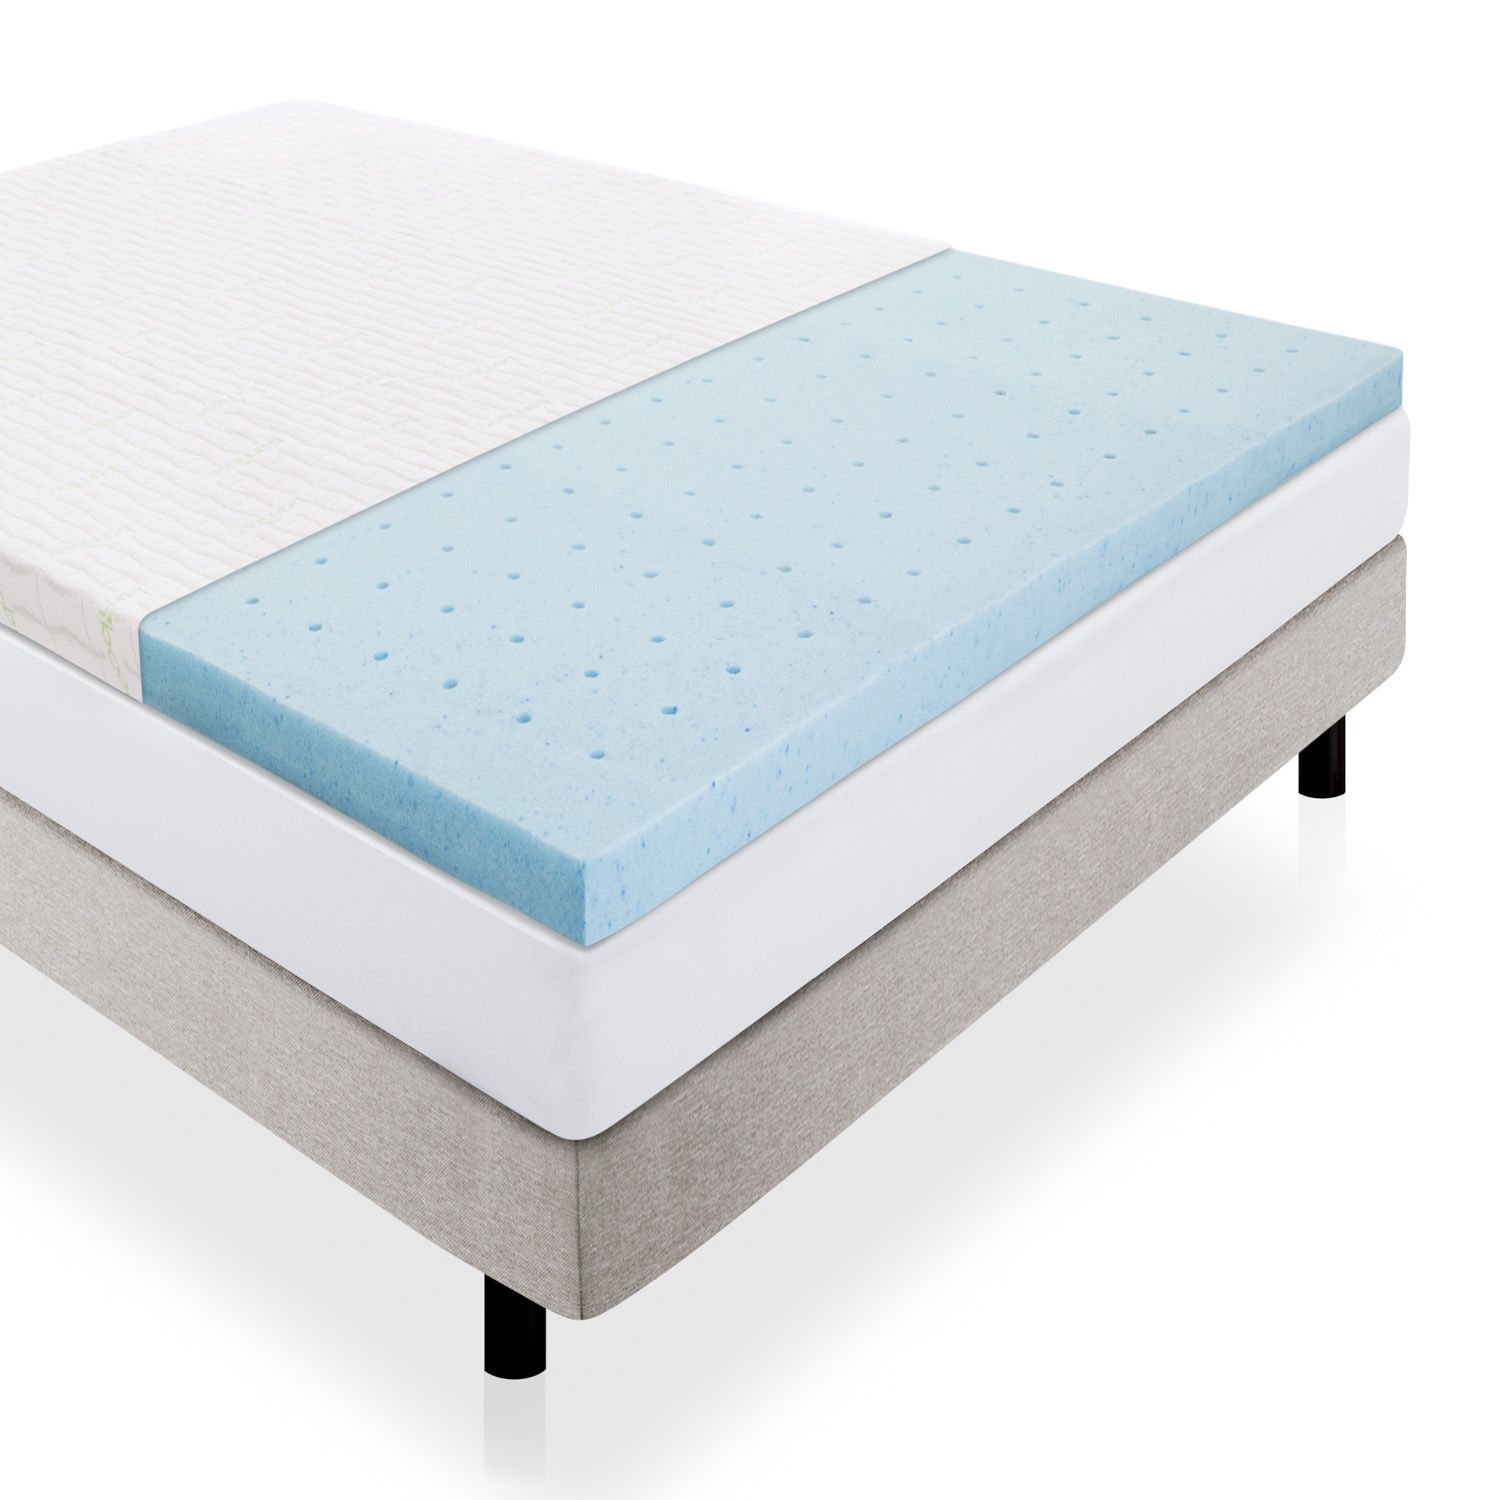 Pillow Top Mattress Covers Pleasing This 25 Inch Thick Gelinfused Memory Foam Mattress Topper Will